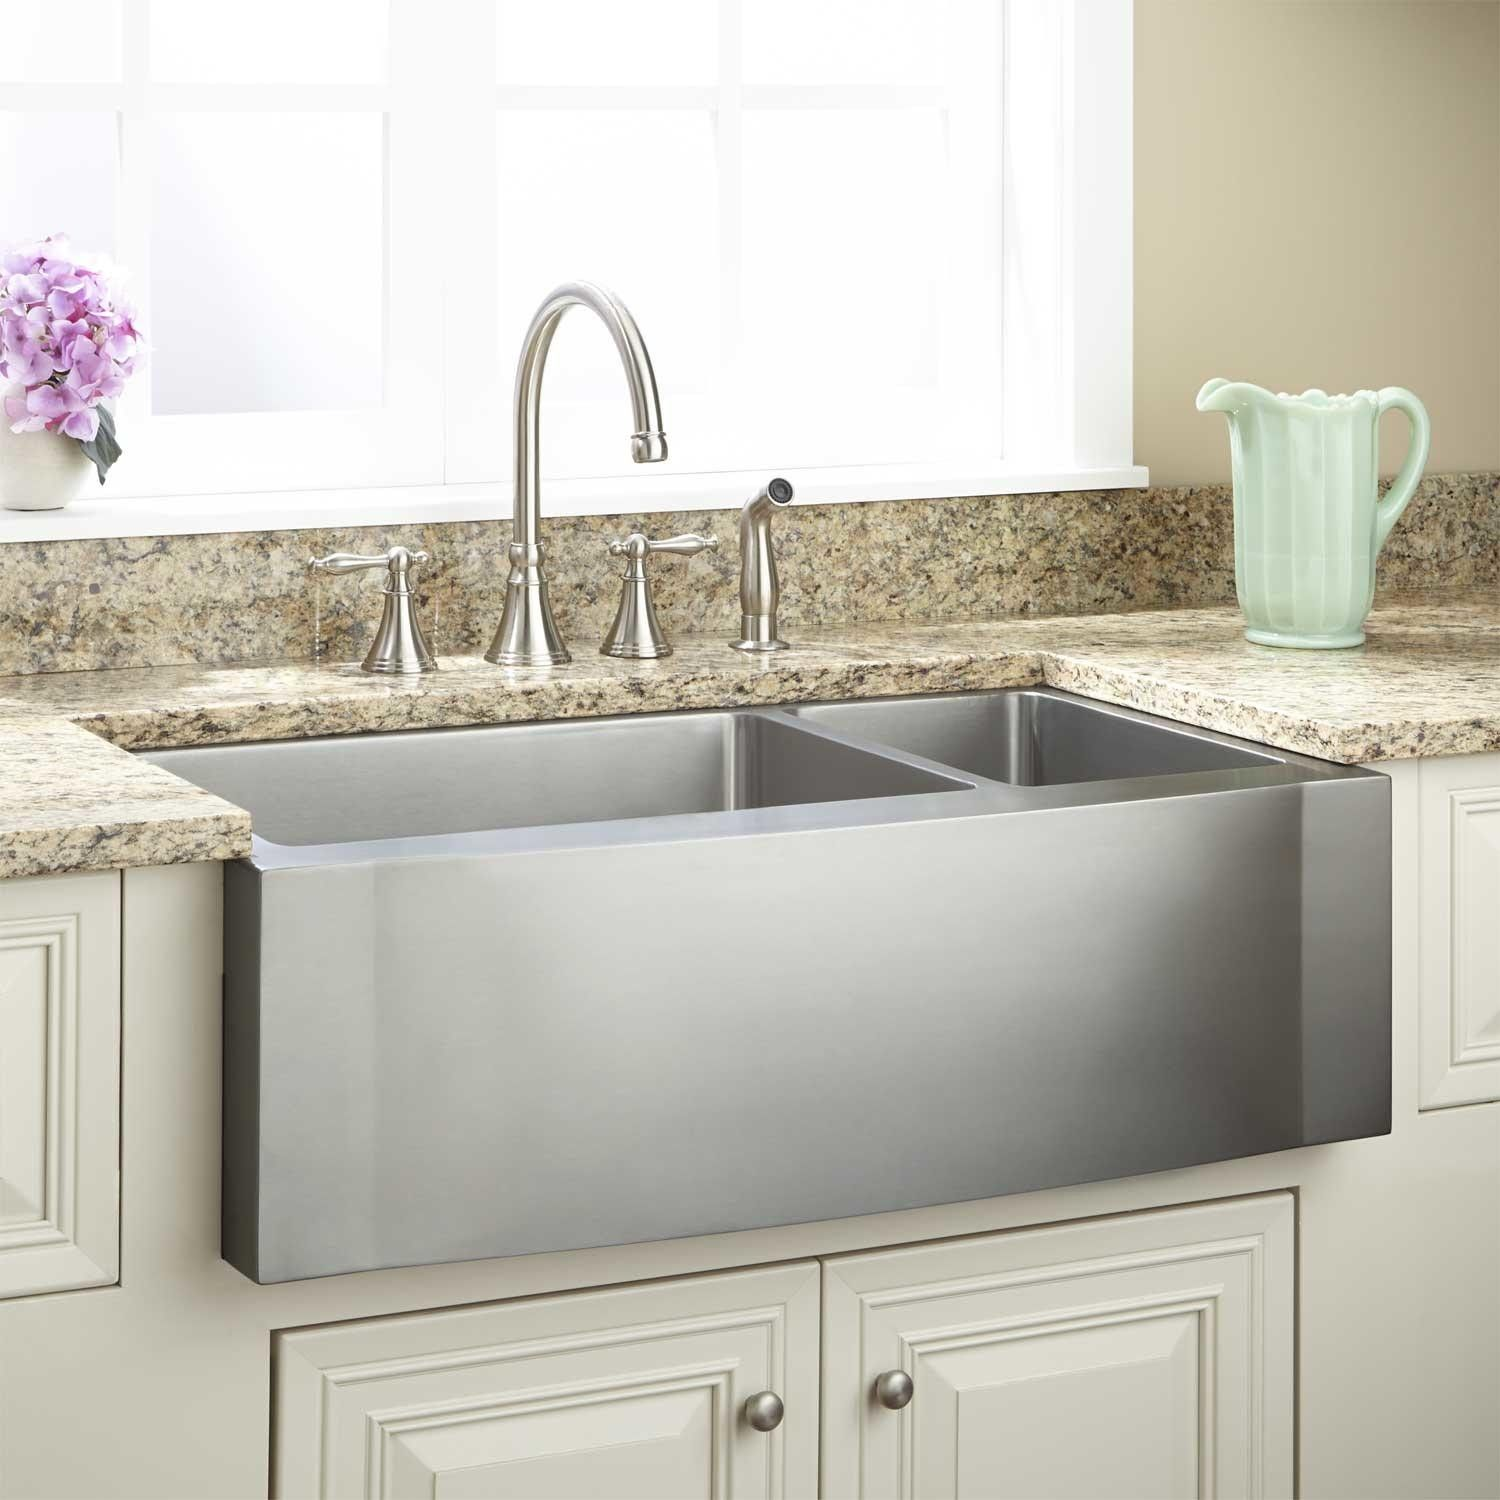 33 Optimum 70 30 Offset Double Bowl Stainless Steel Farmhouse